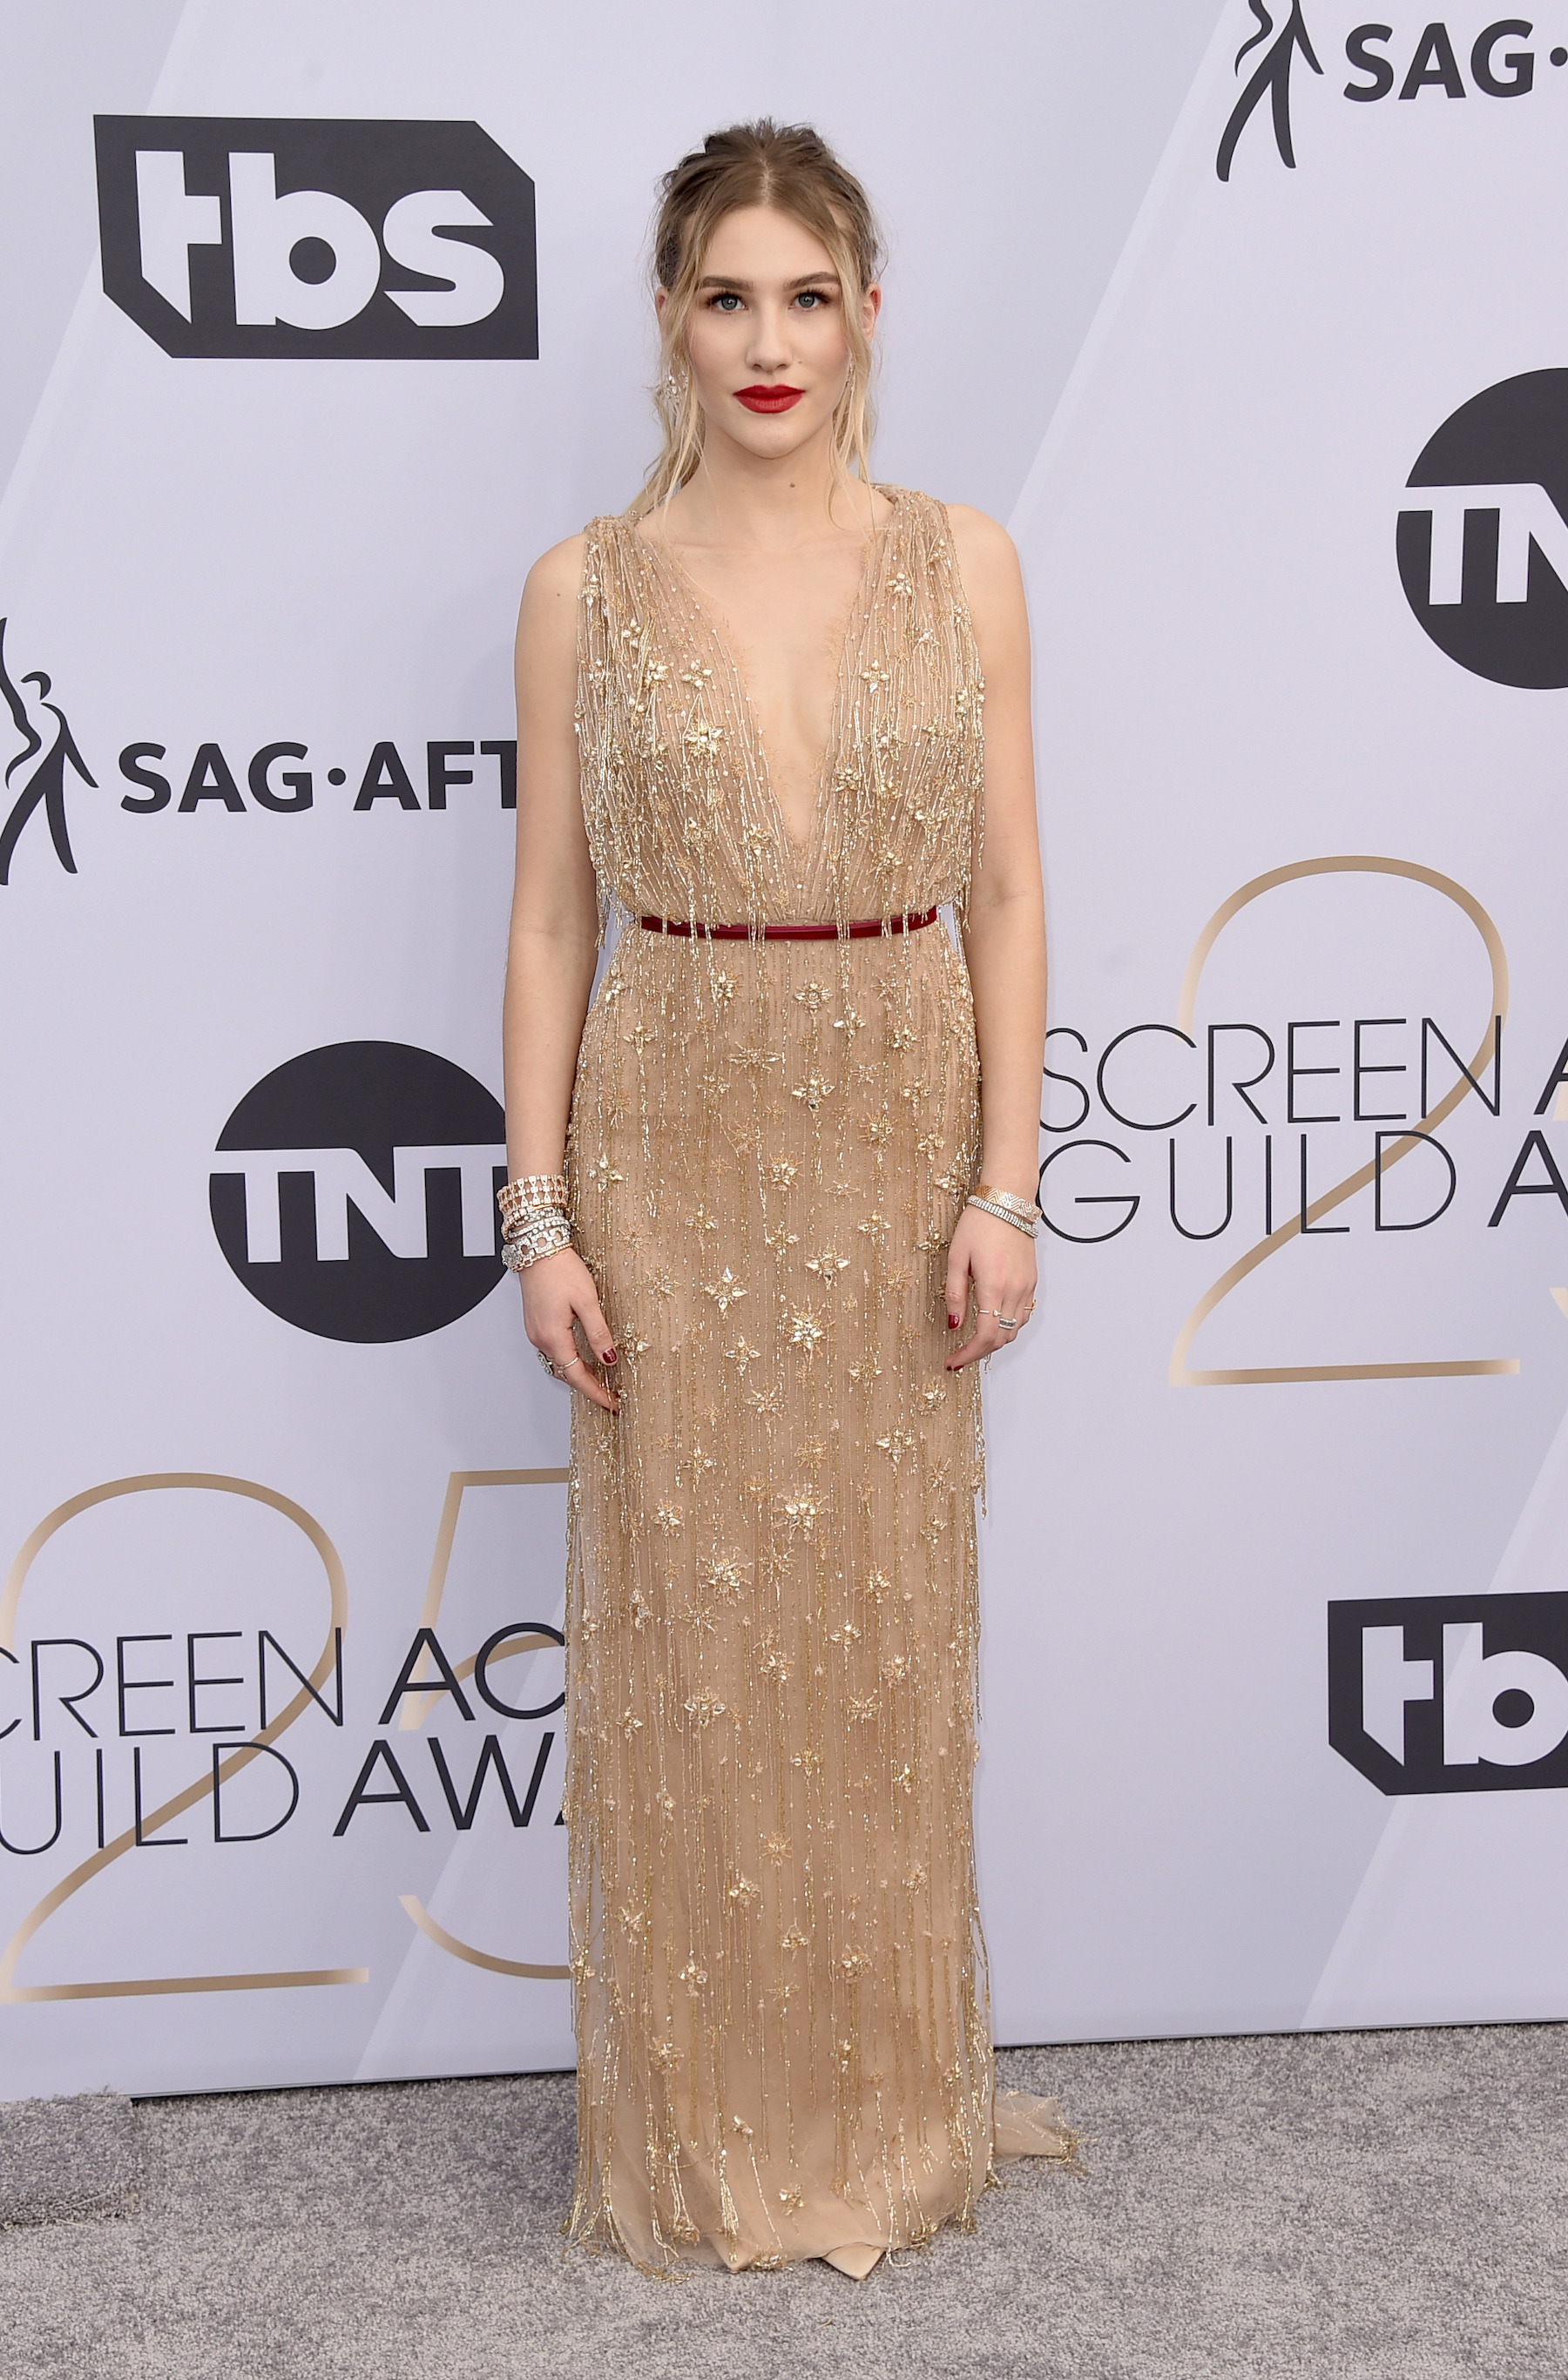 <div class='meta'><div class='origin-logo' data-origin='AP'></div><span class='caption-text' data-credit='Jordan Strauss/Invision/AP'>Danika Yarosh arrives at the 25th annual Screen Actors Guild Awards at the Shrine Auditorium & Expo Hall on Sunday, Jan. 27, 2019, in Los Angeles.</span></div>